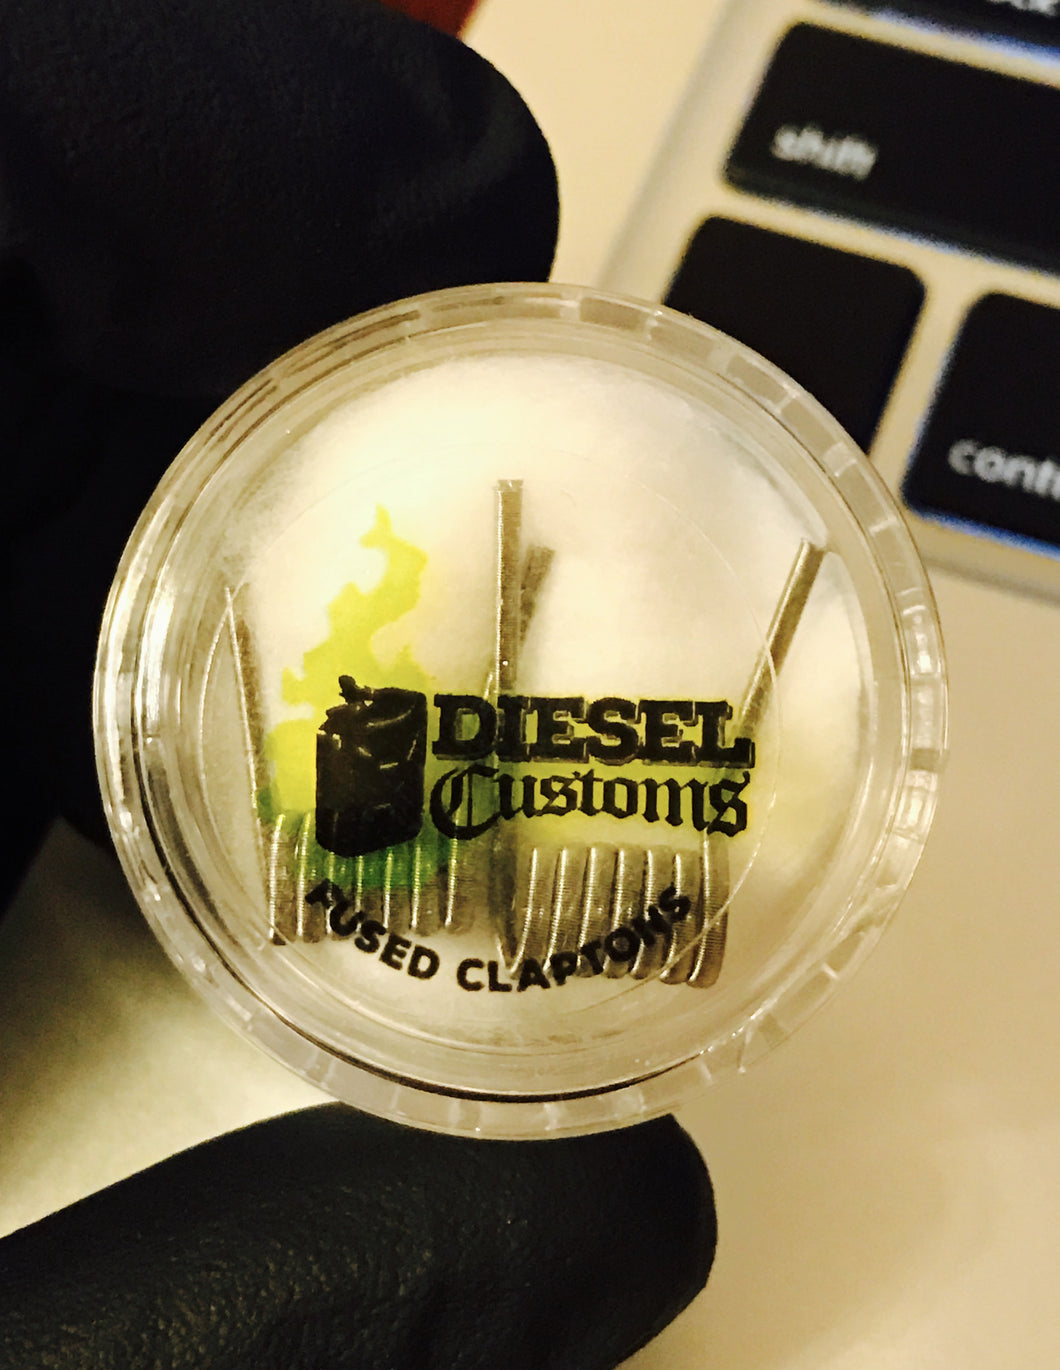 Diesel Customs SS316L 24/36 Fused Clapton's